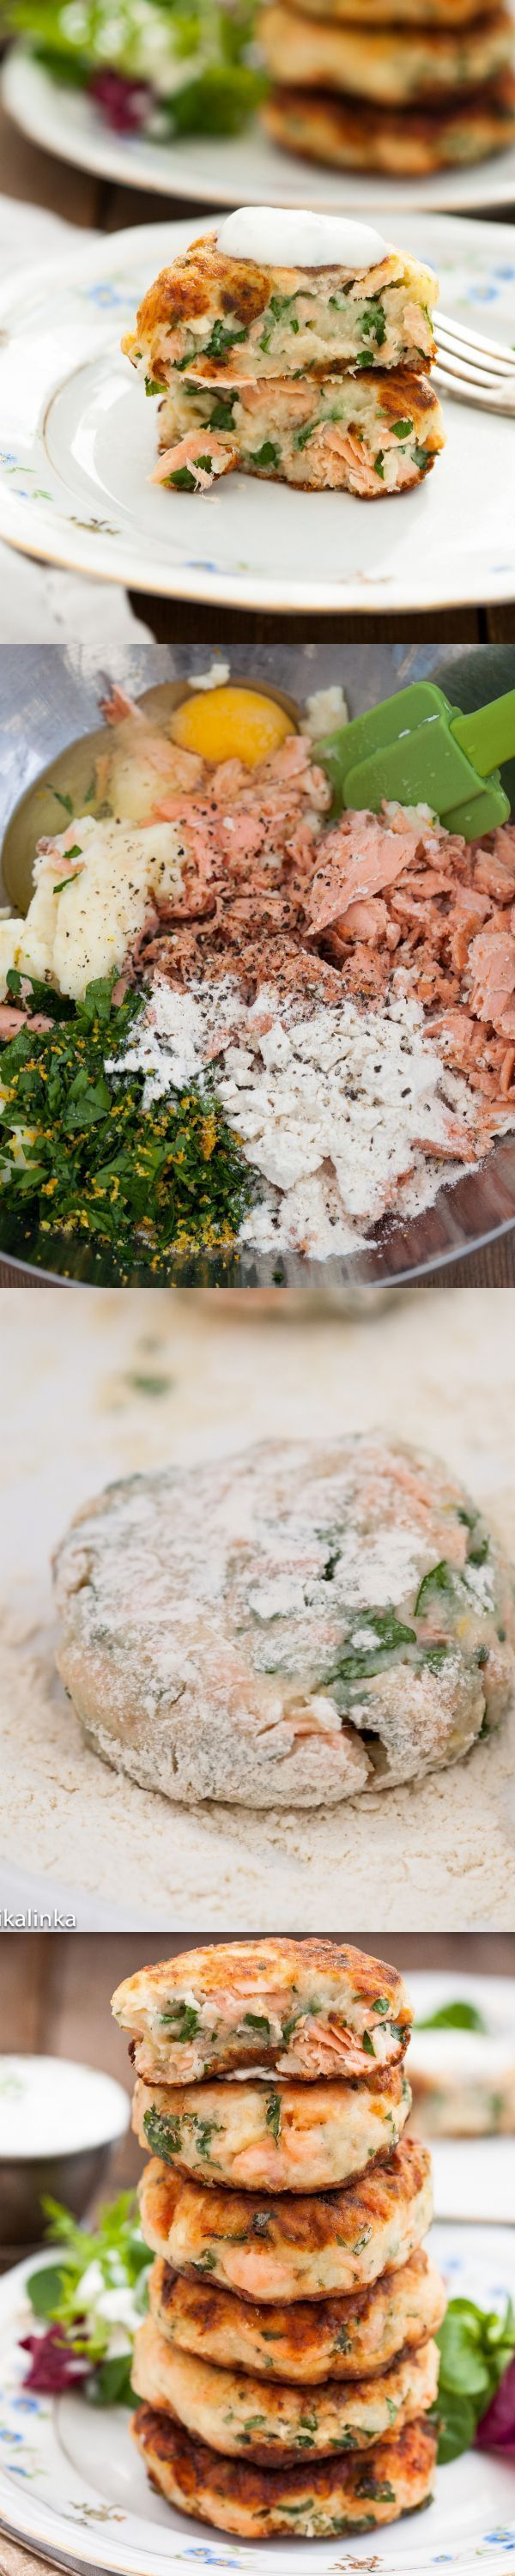 Salmon Cakes with Chive and Garlic Sauce. These cakes are prepared with potatoes instead of bread crumbs so could be easily made gluten-free.